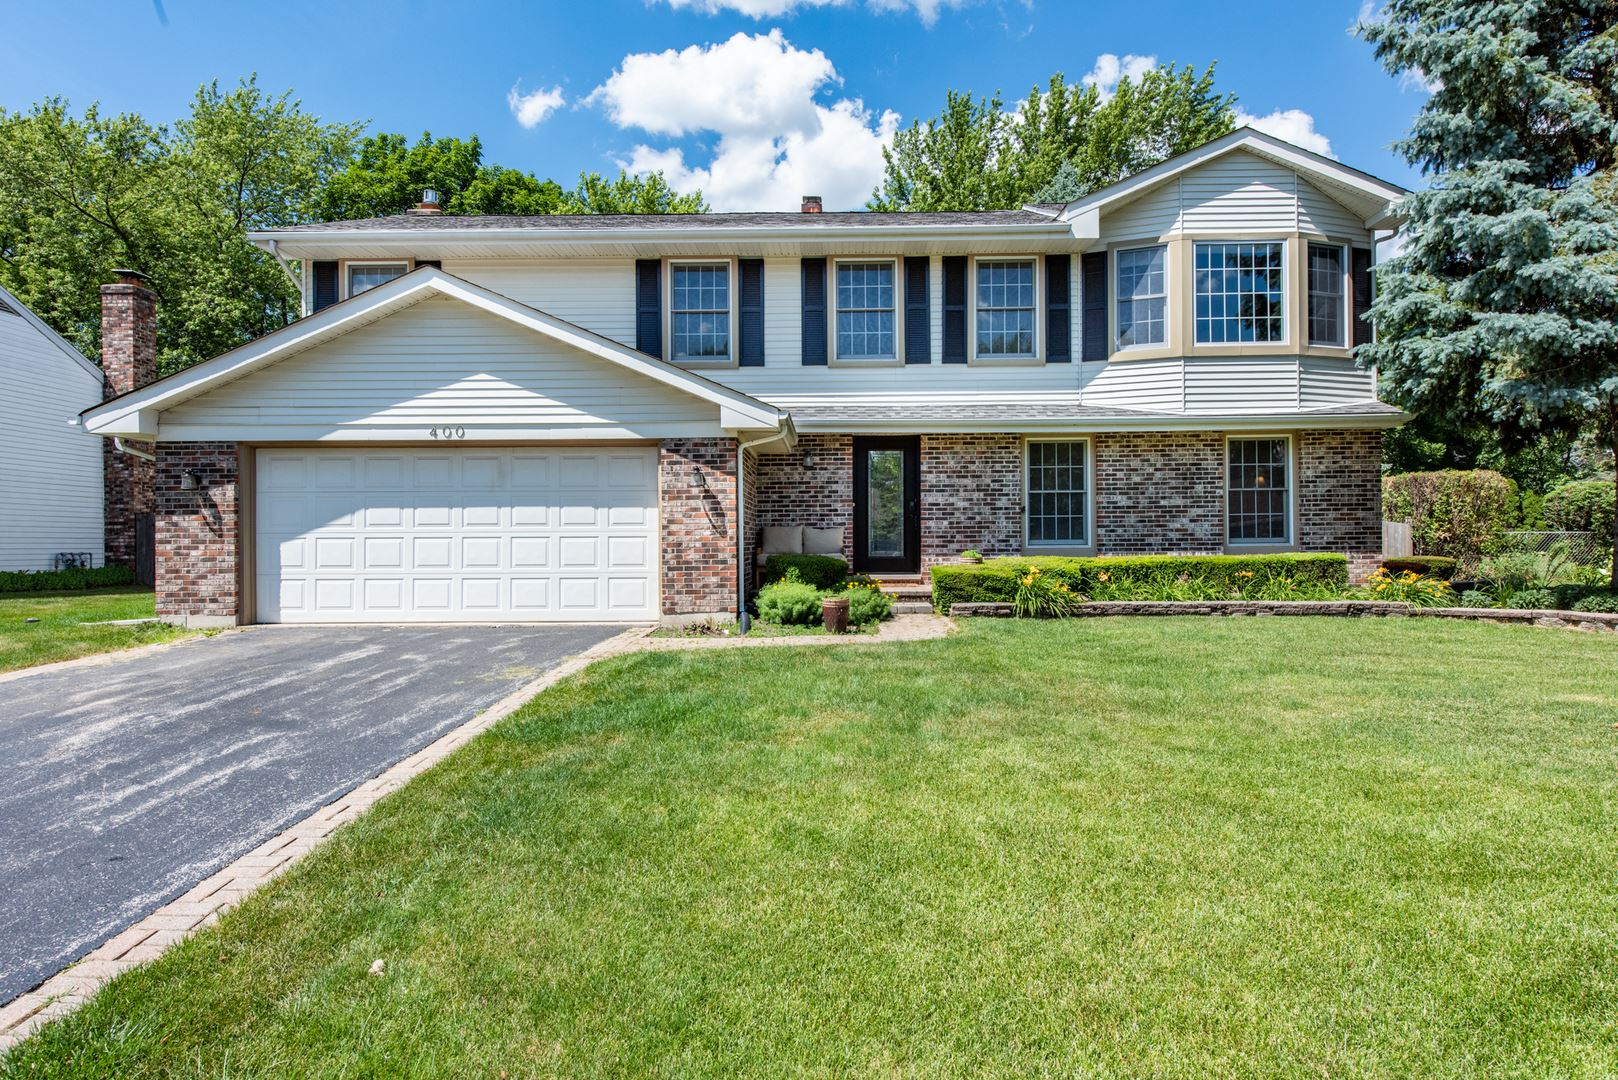 400 W Golf Road, Libertyville, IL 60048 - #: 10764818